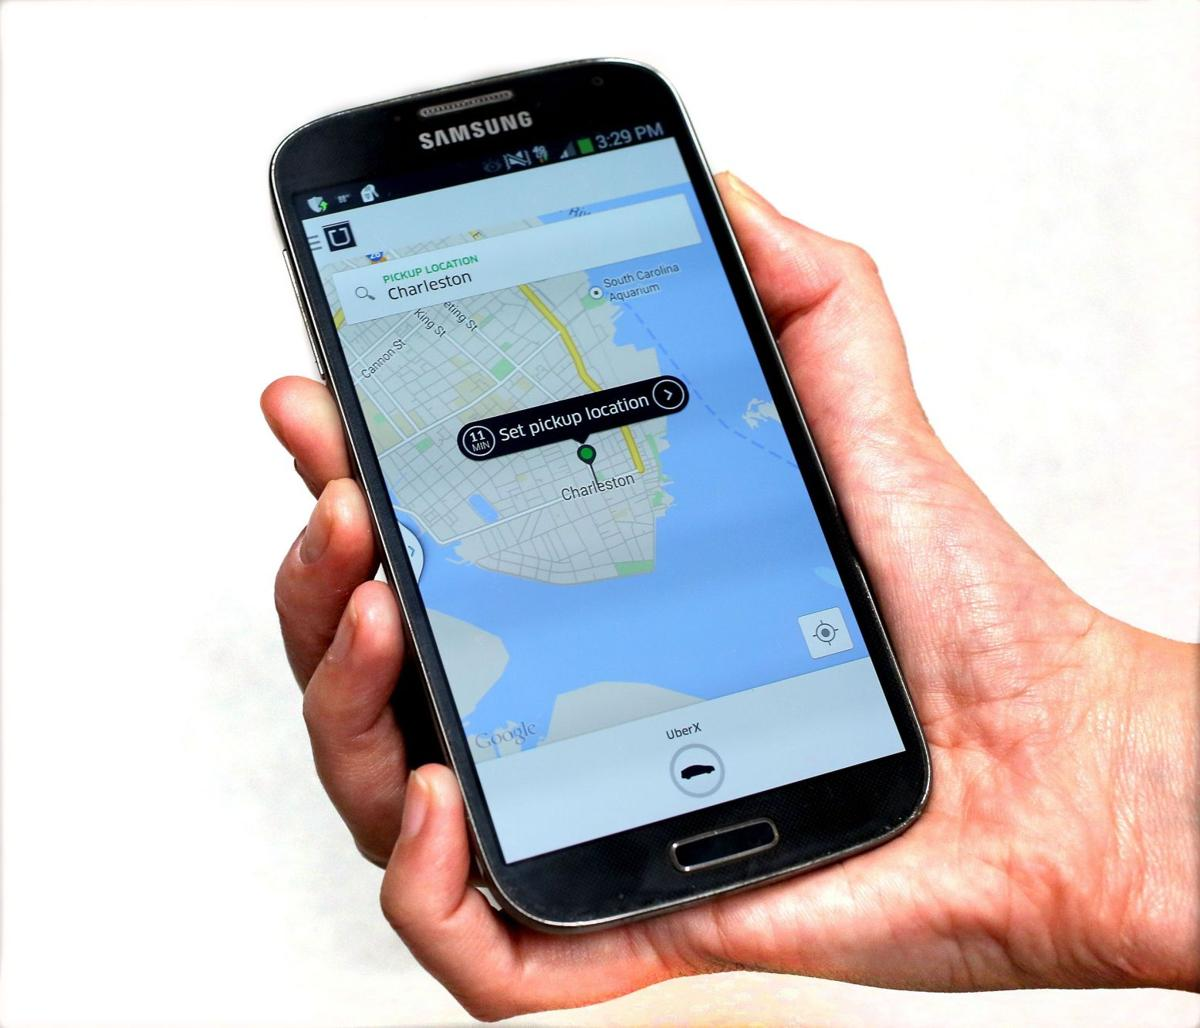 Gov. Haley writes pro-Uber letter after cease and desist orderS.C. orders Uber to halt its operations Uber launches social media campaign in response to cease and desist order in South Carolina